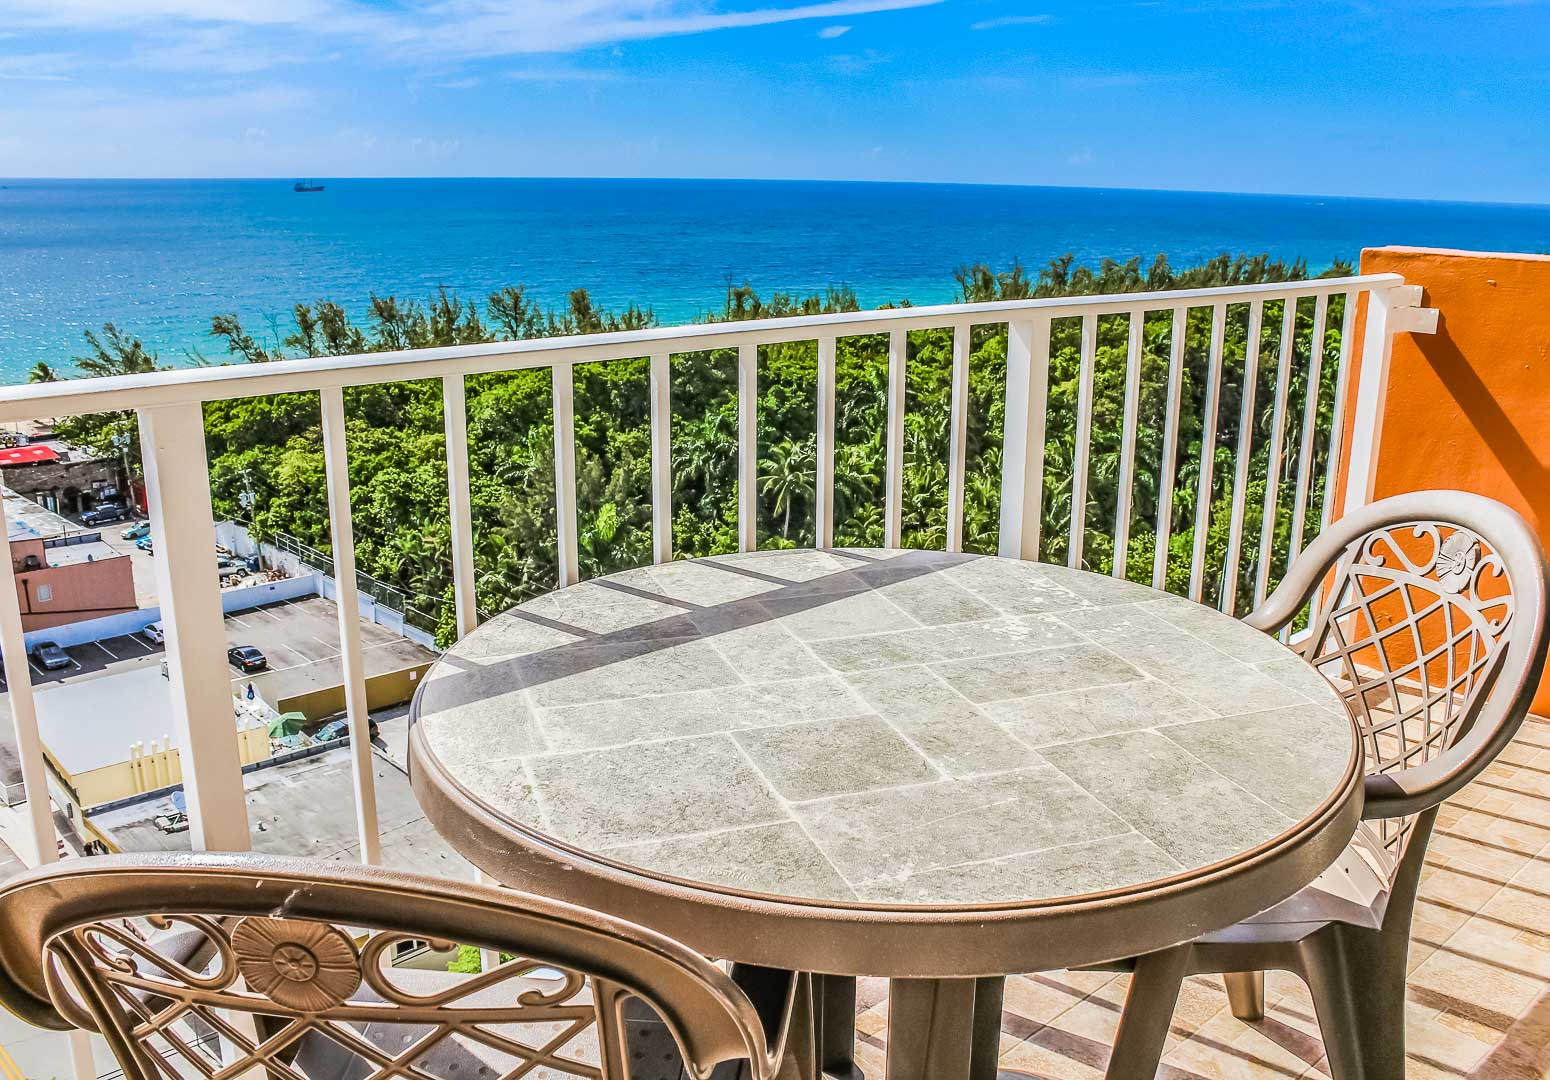 A relaxing beach view from the balcony at VRI's Ft. Lauderdale Beach Resort in Florida.